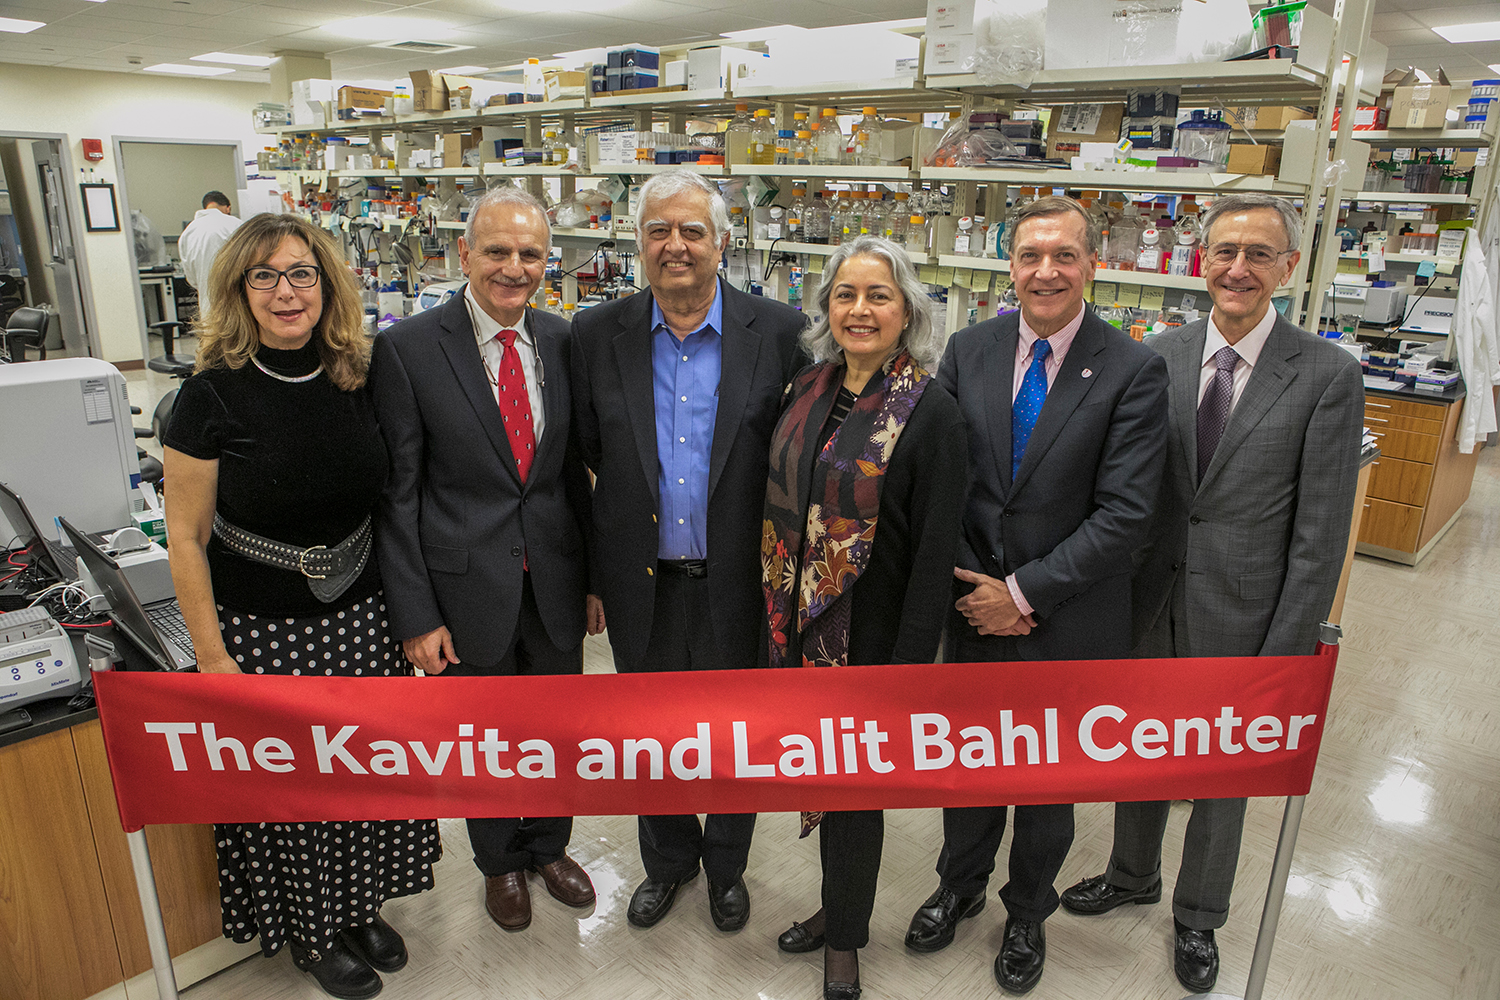 At Bahl Center unveiling, left to right: Lina Obeid, MD, Yusuf Hannun, MD, Lalit Bahl, Kavita Bahl, Stony Brook University President Samuel L. Stanley Jr., MD, Kenneth Kaushansky, MD, Senior Vice President for the Health Sciences and Dean of the School of Medicine.